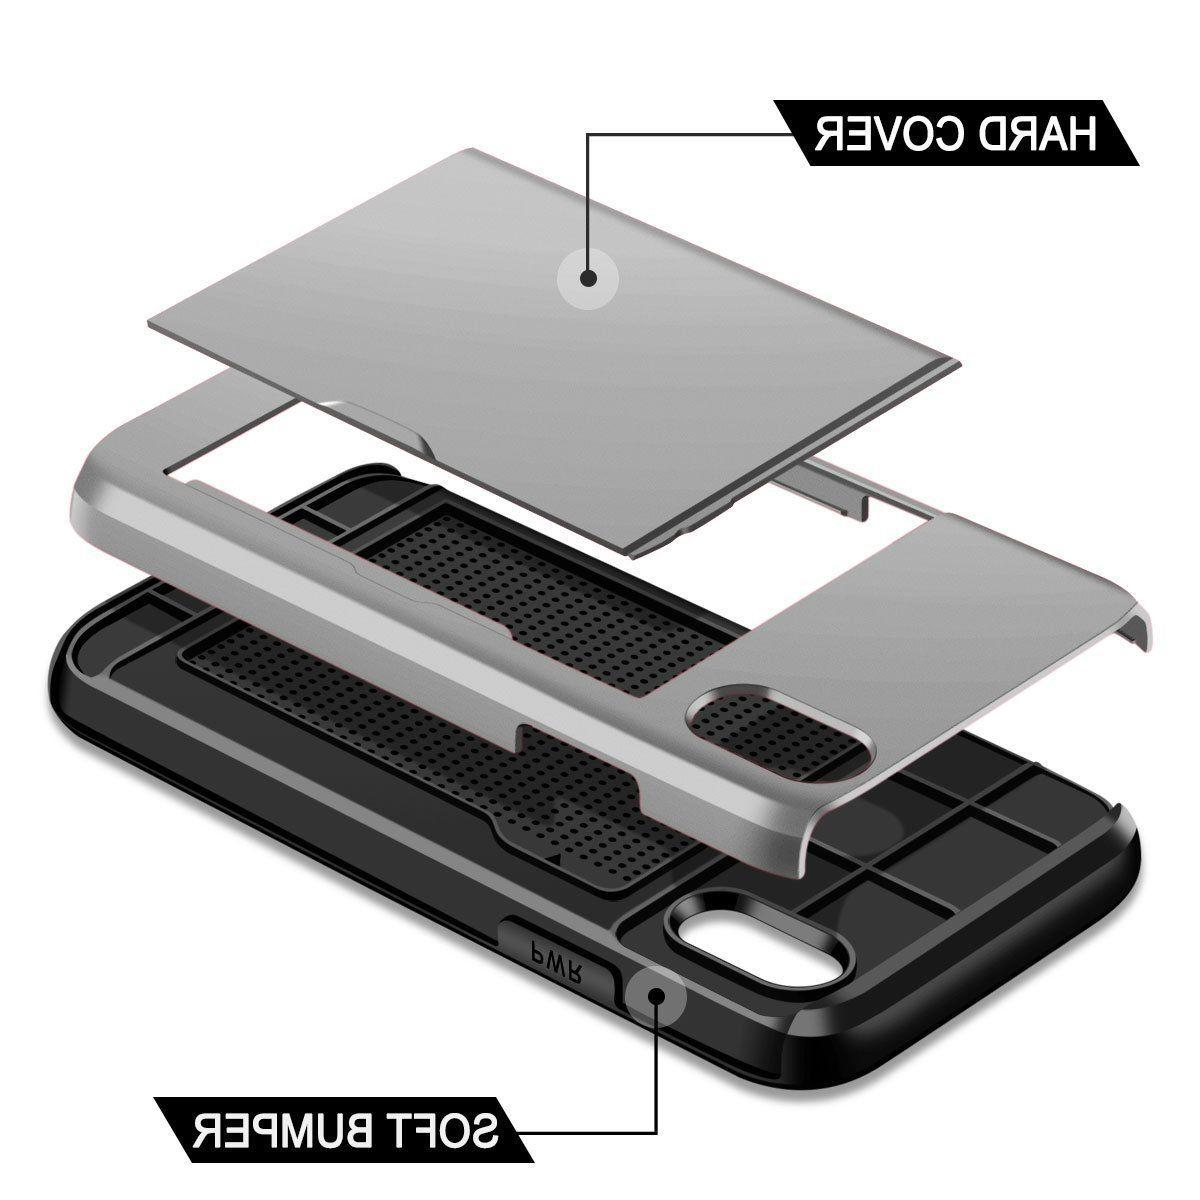 For Max Wallet Holder Protection Cover